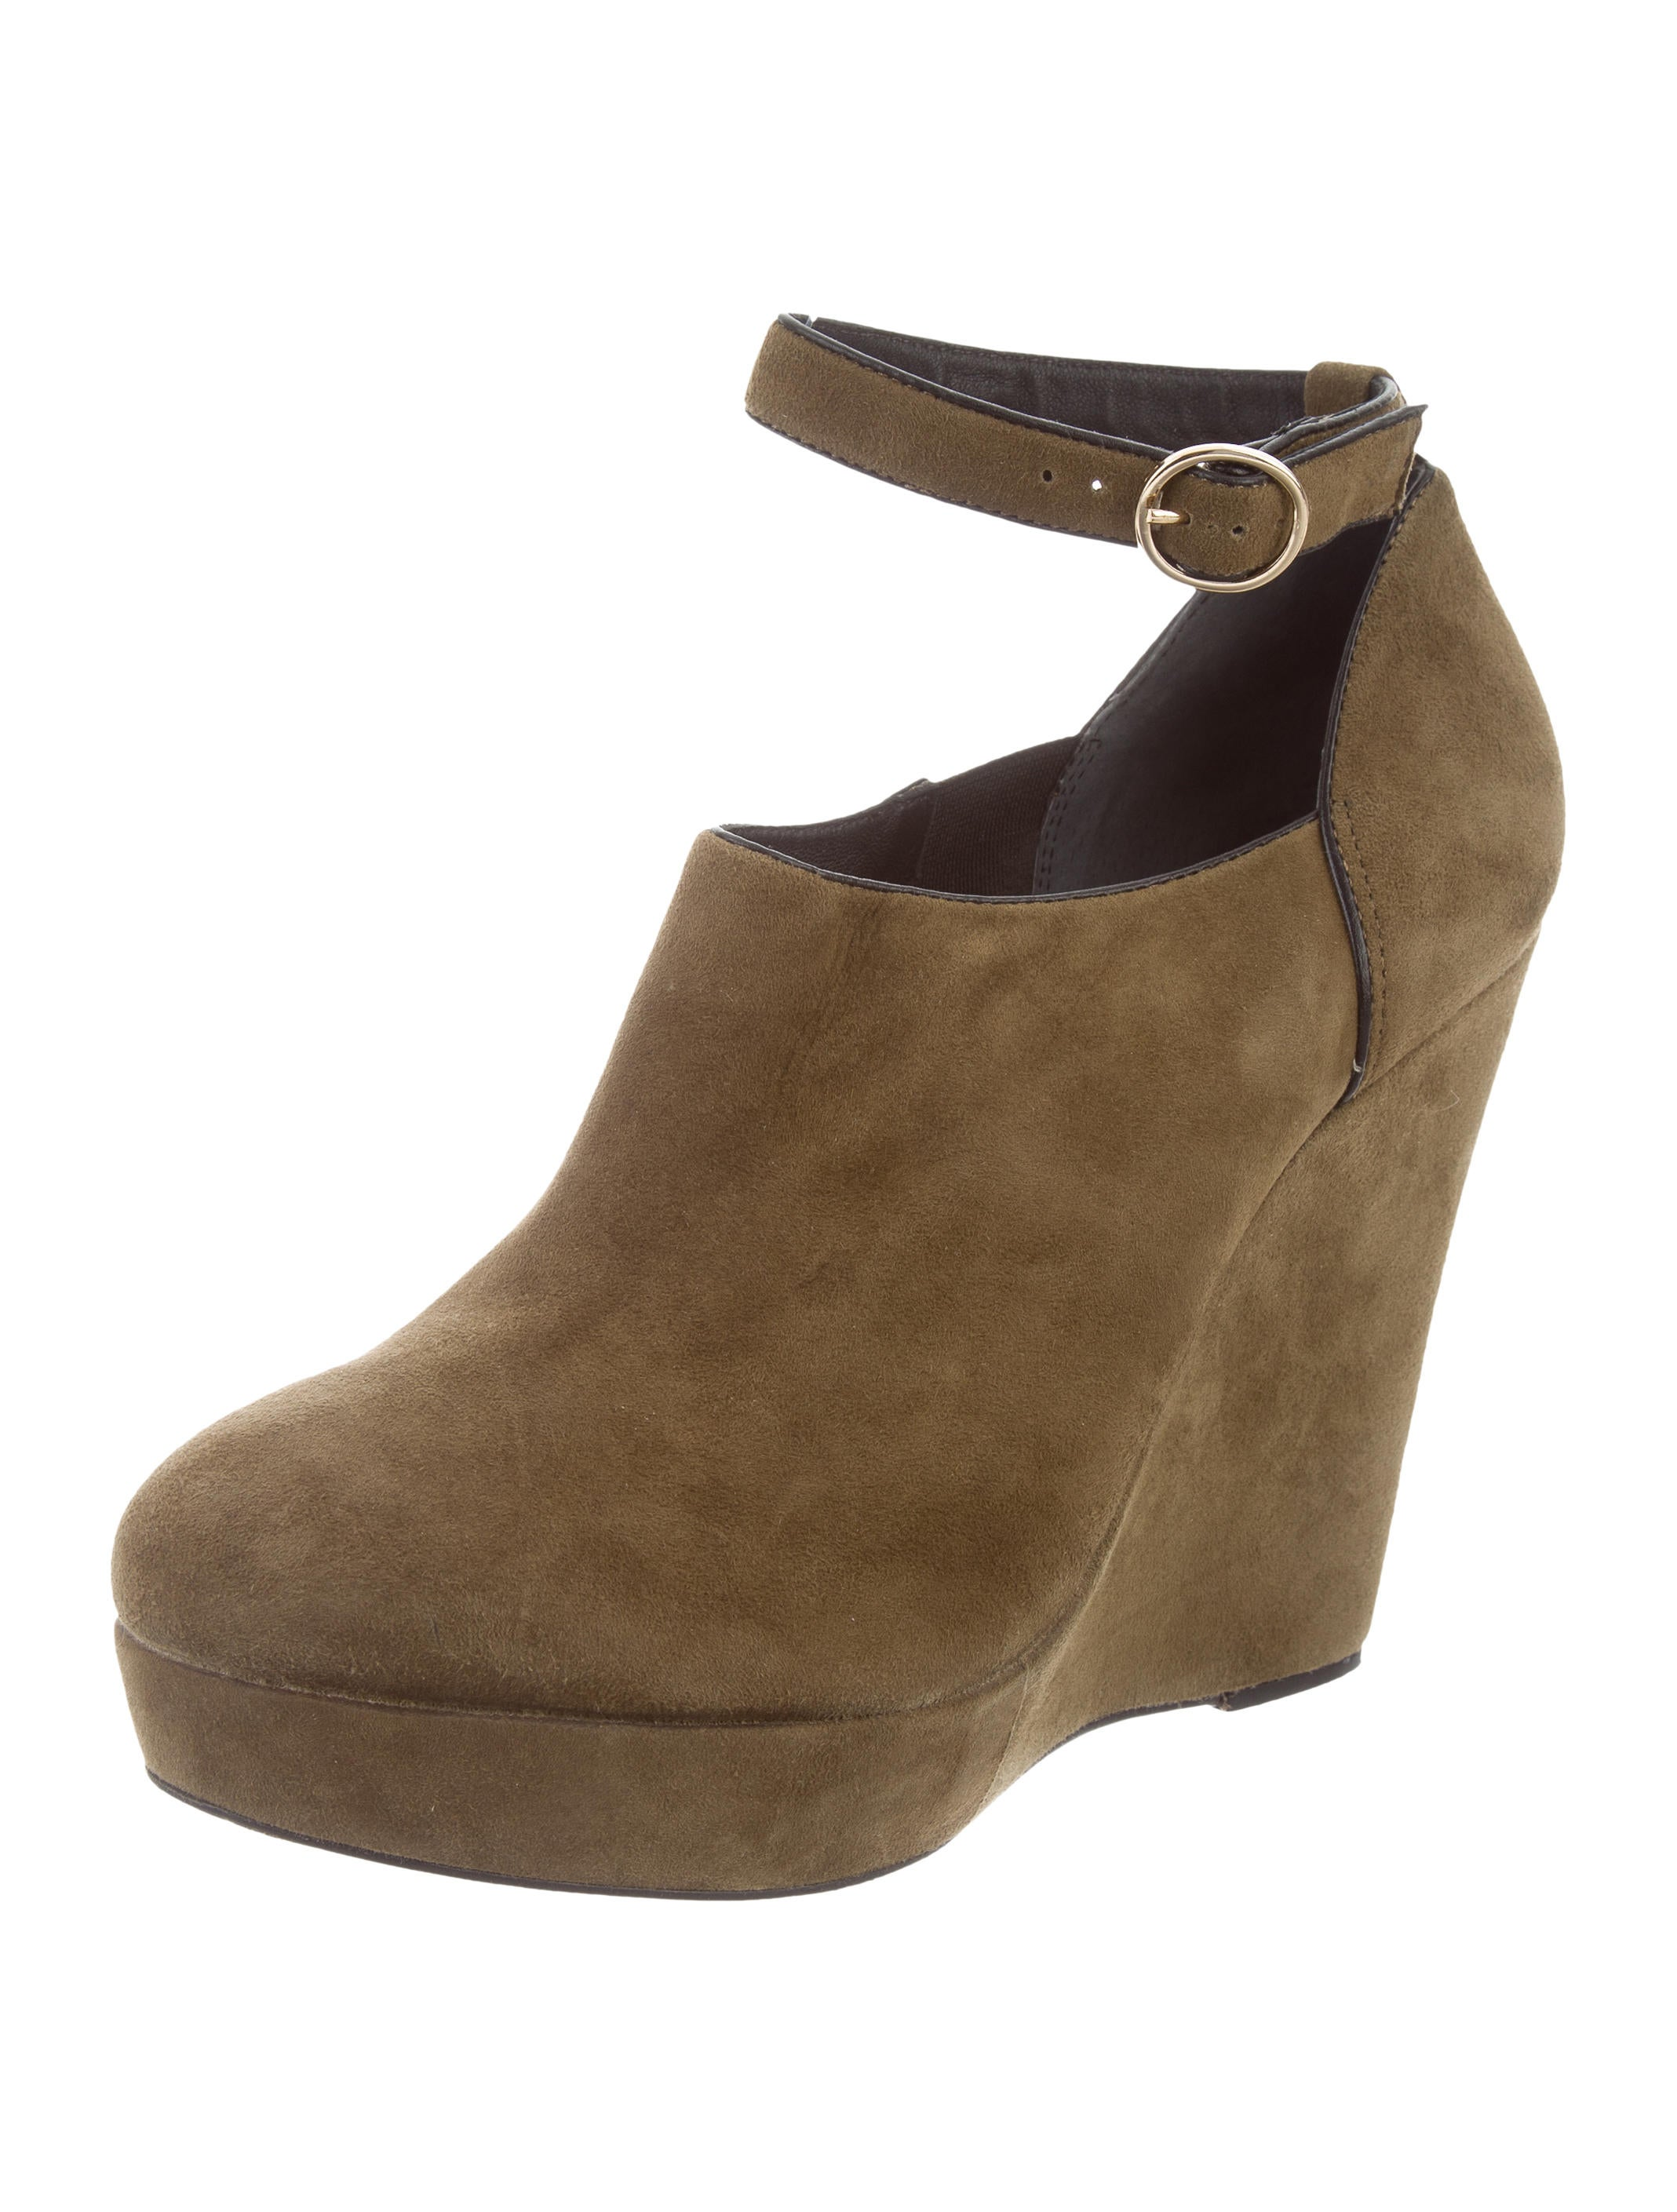 Pour La Victoire Suede Round-Toe Wedges latest sale online discount new free shipping deals perfect outlet Manchester ucXcry8Dta